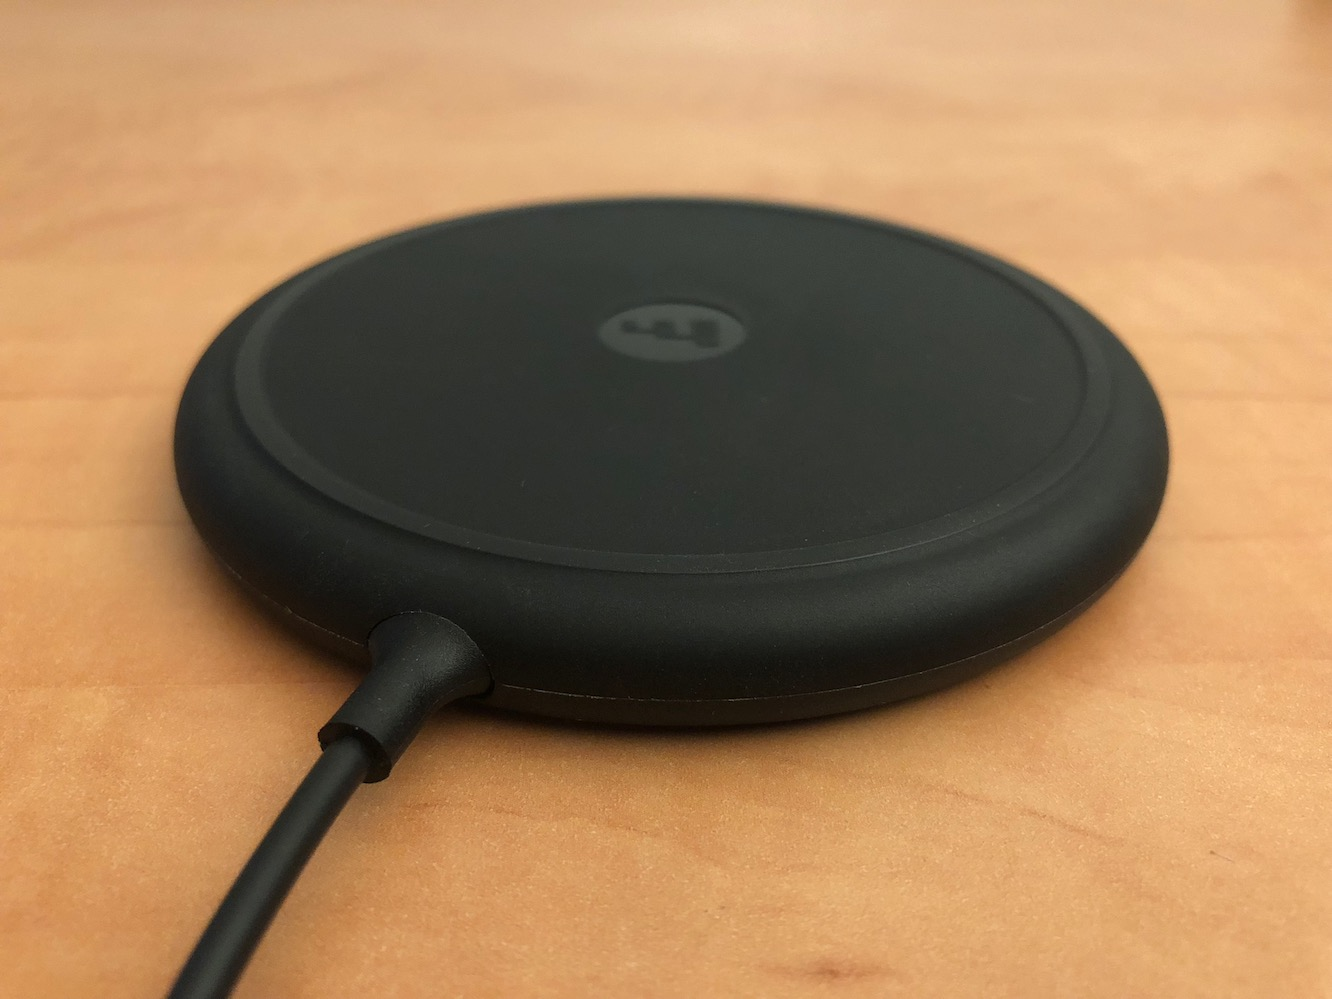 Review: Mophie Wireless Charging Base 3